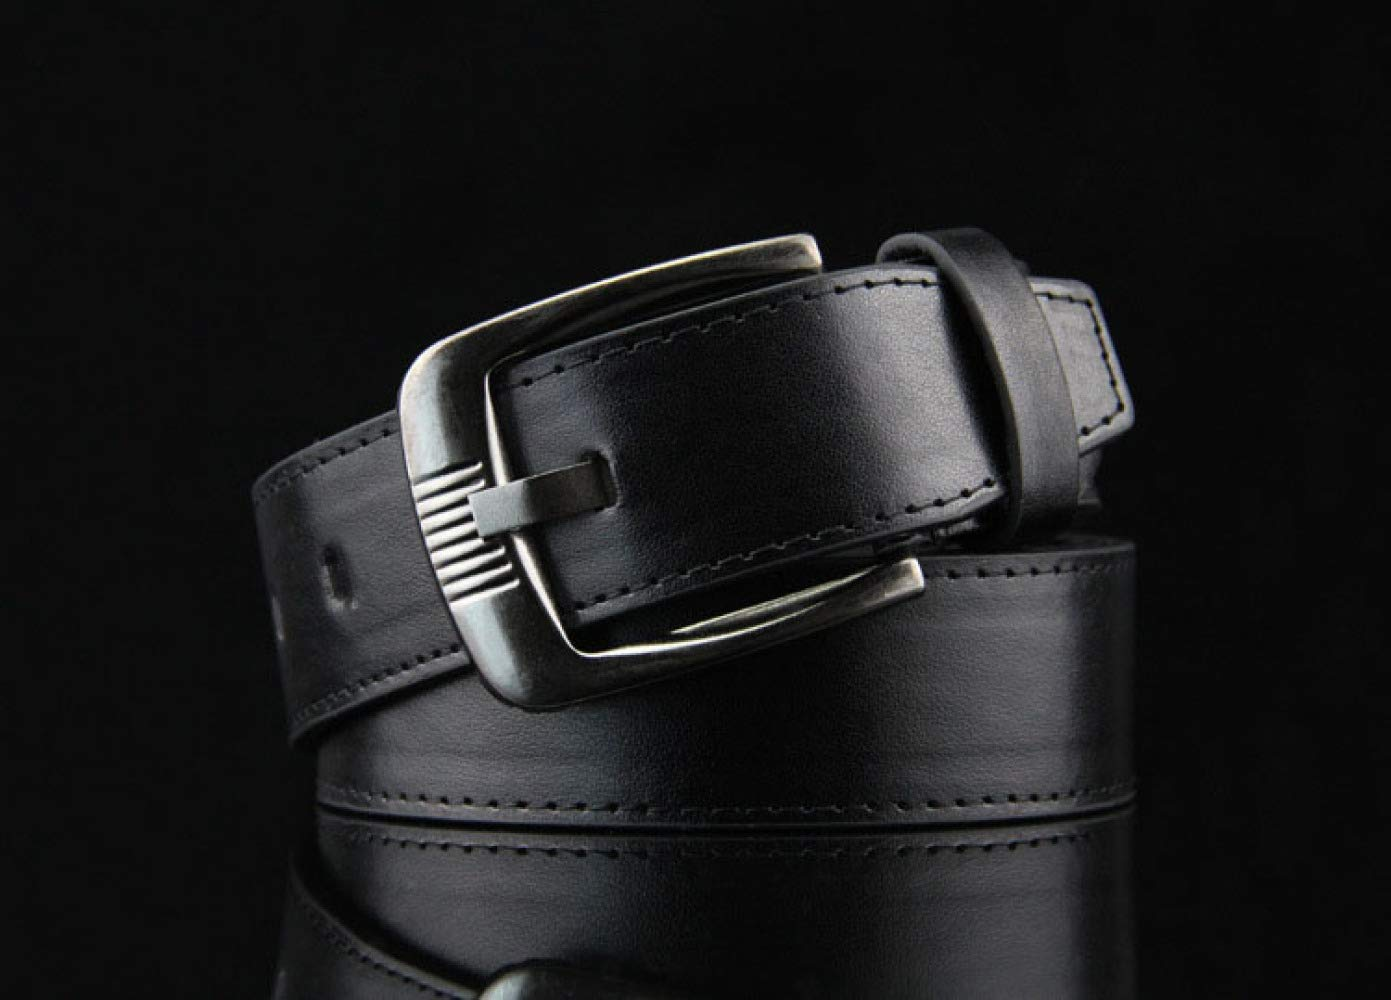 Gift Belt Stylish Mens Belt pin Buckle Belt Wild Casual Suit Belt XQY Mens Belt Gift Belt